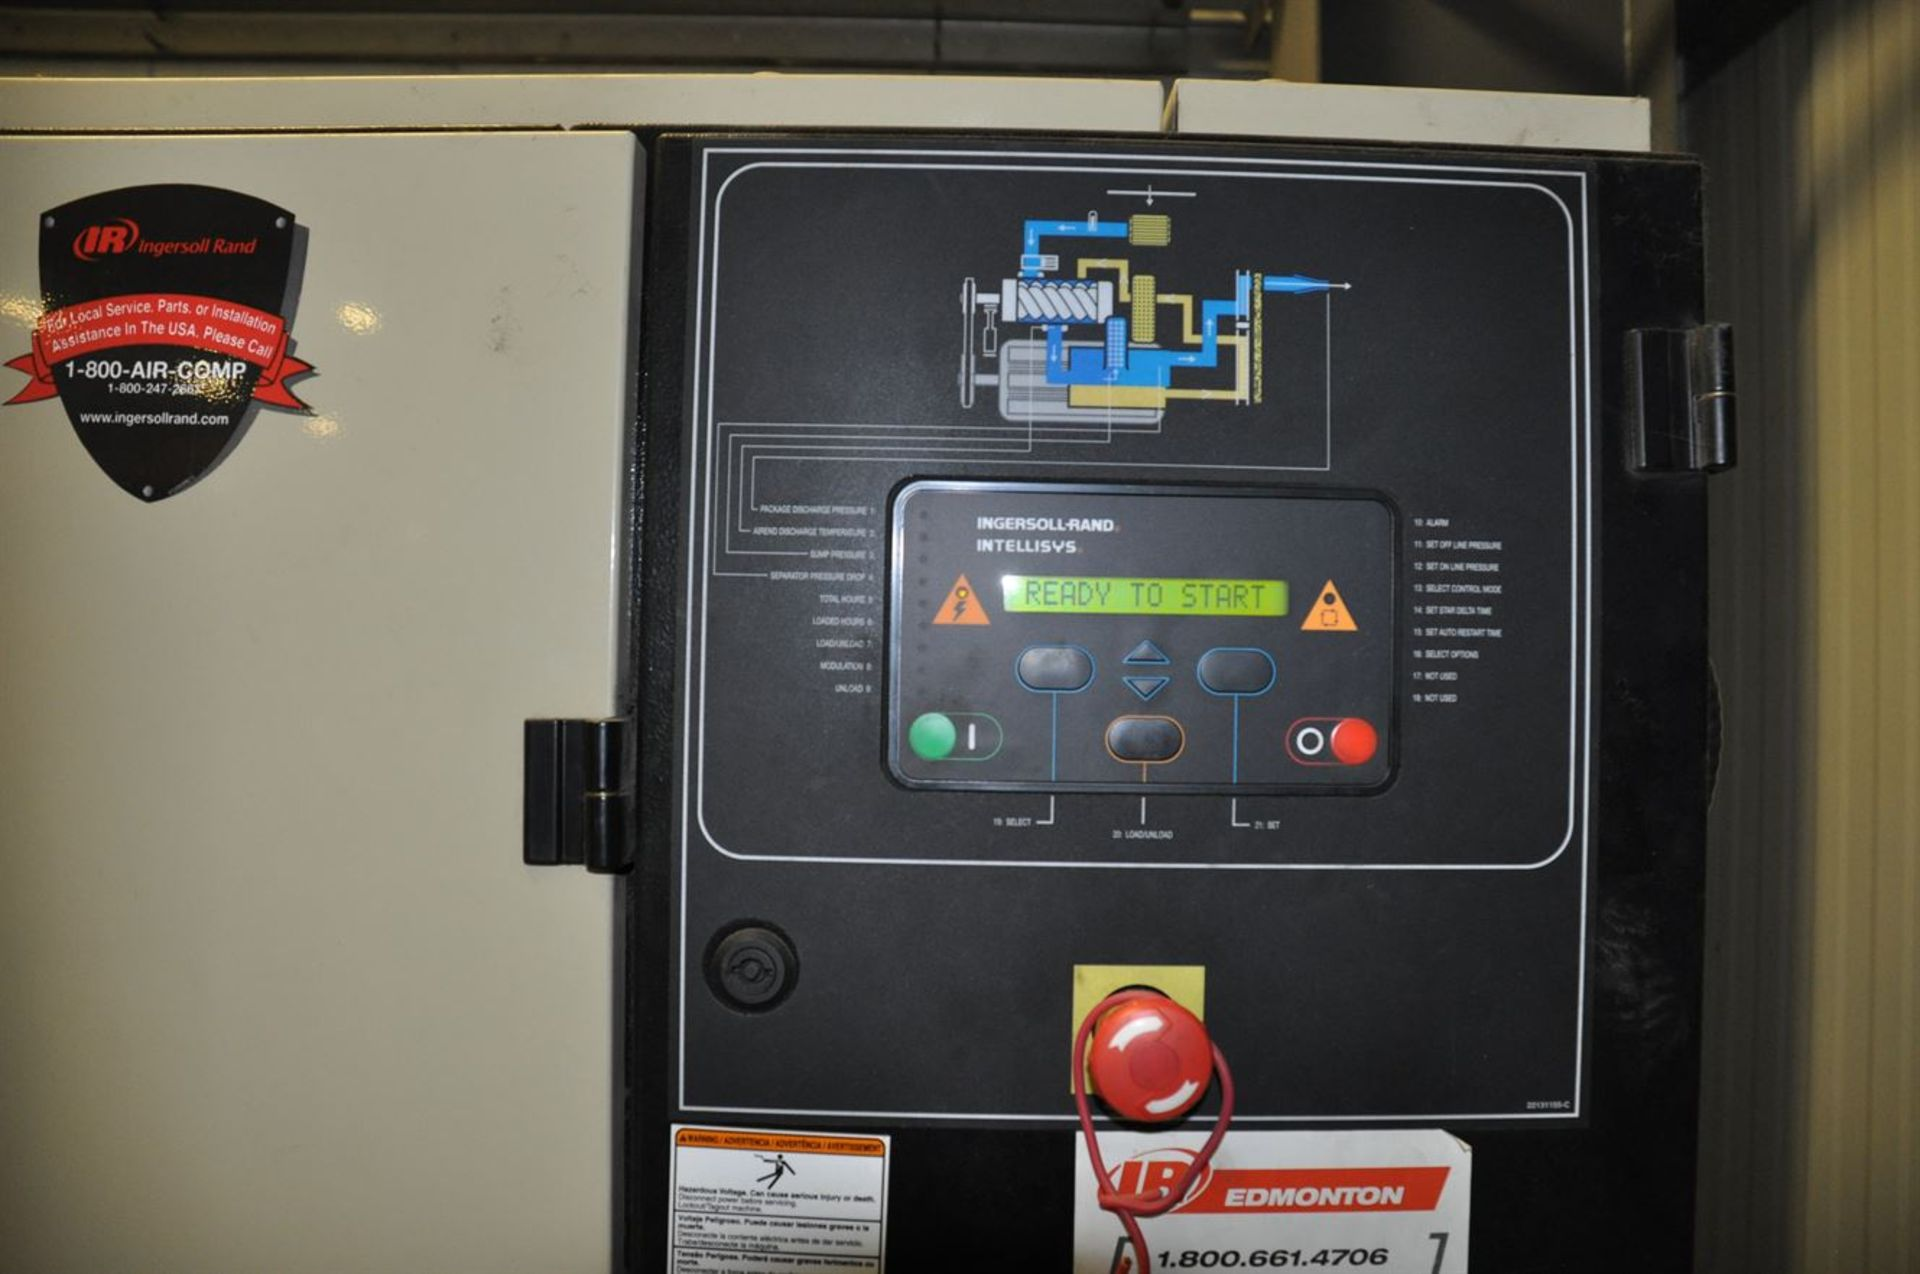 2012 INGERSOLL RAND UP6-30-150 30 hp Air Compressor System, s/n CBV185766, w/ Built-In Air Dryer, - Image 2 of 2